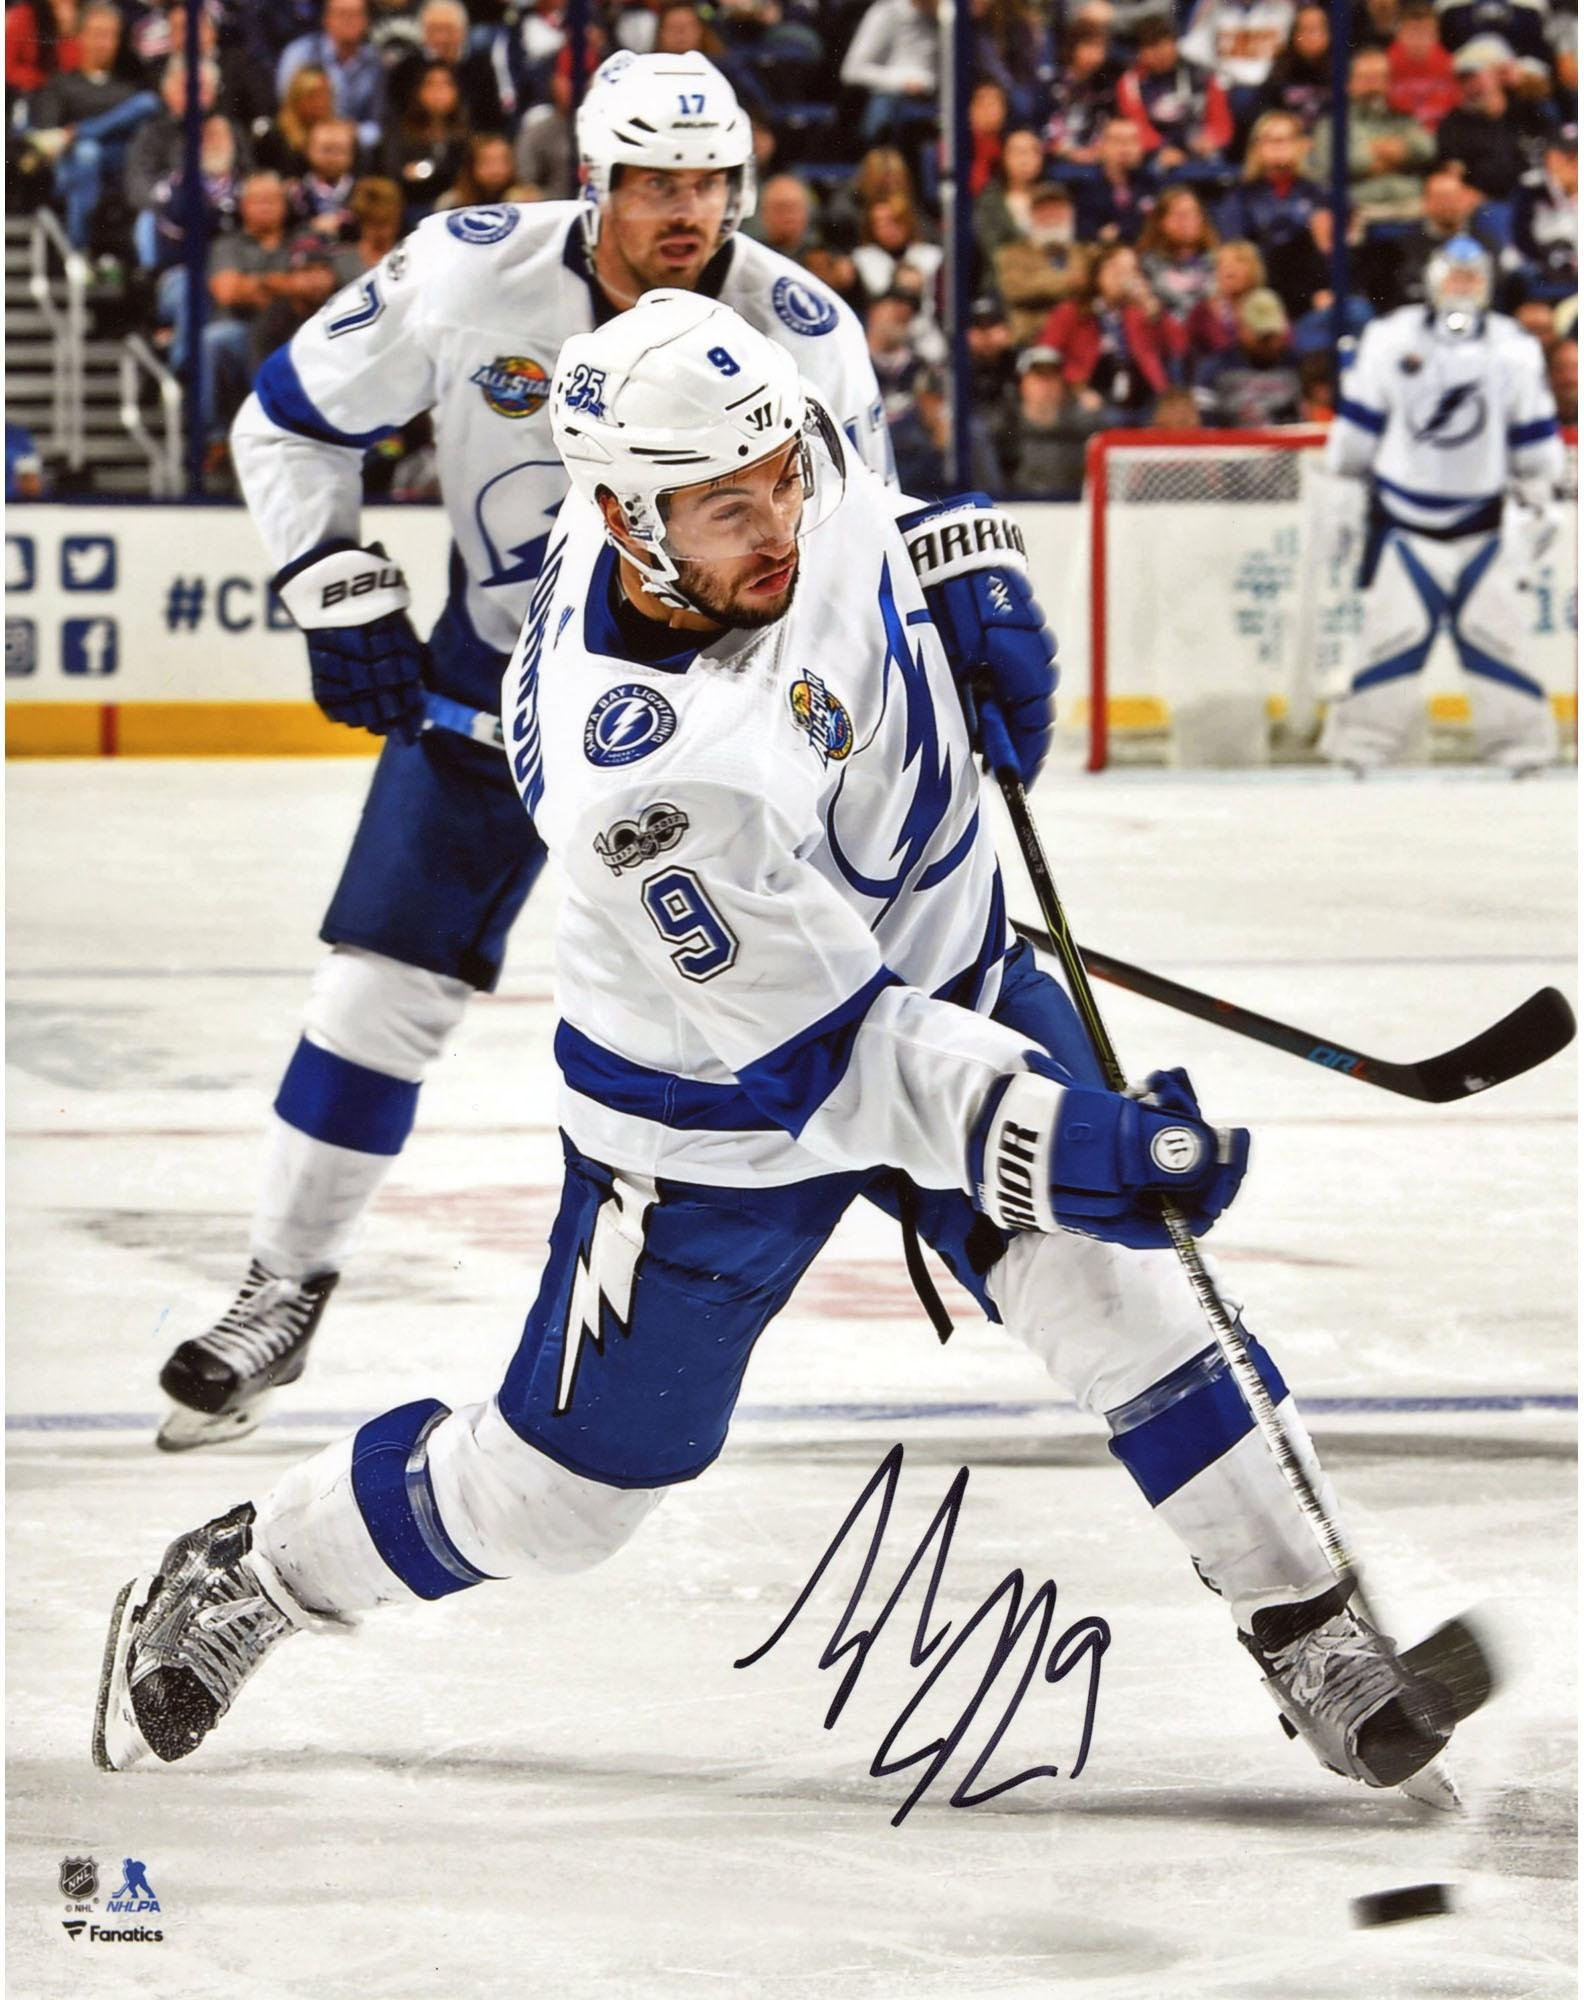 """Tyler Johnson Tampa Bay Lightning Autographed 8"""" x 10"""" White Jersey Shooting Photograph Fanatics Authentic Certified"""